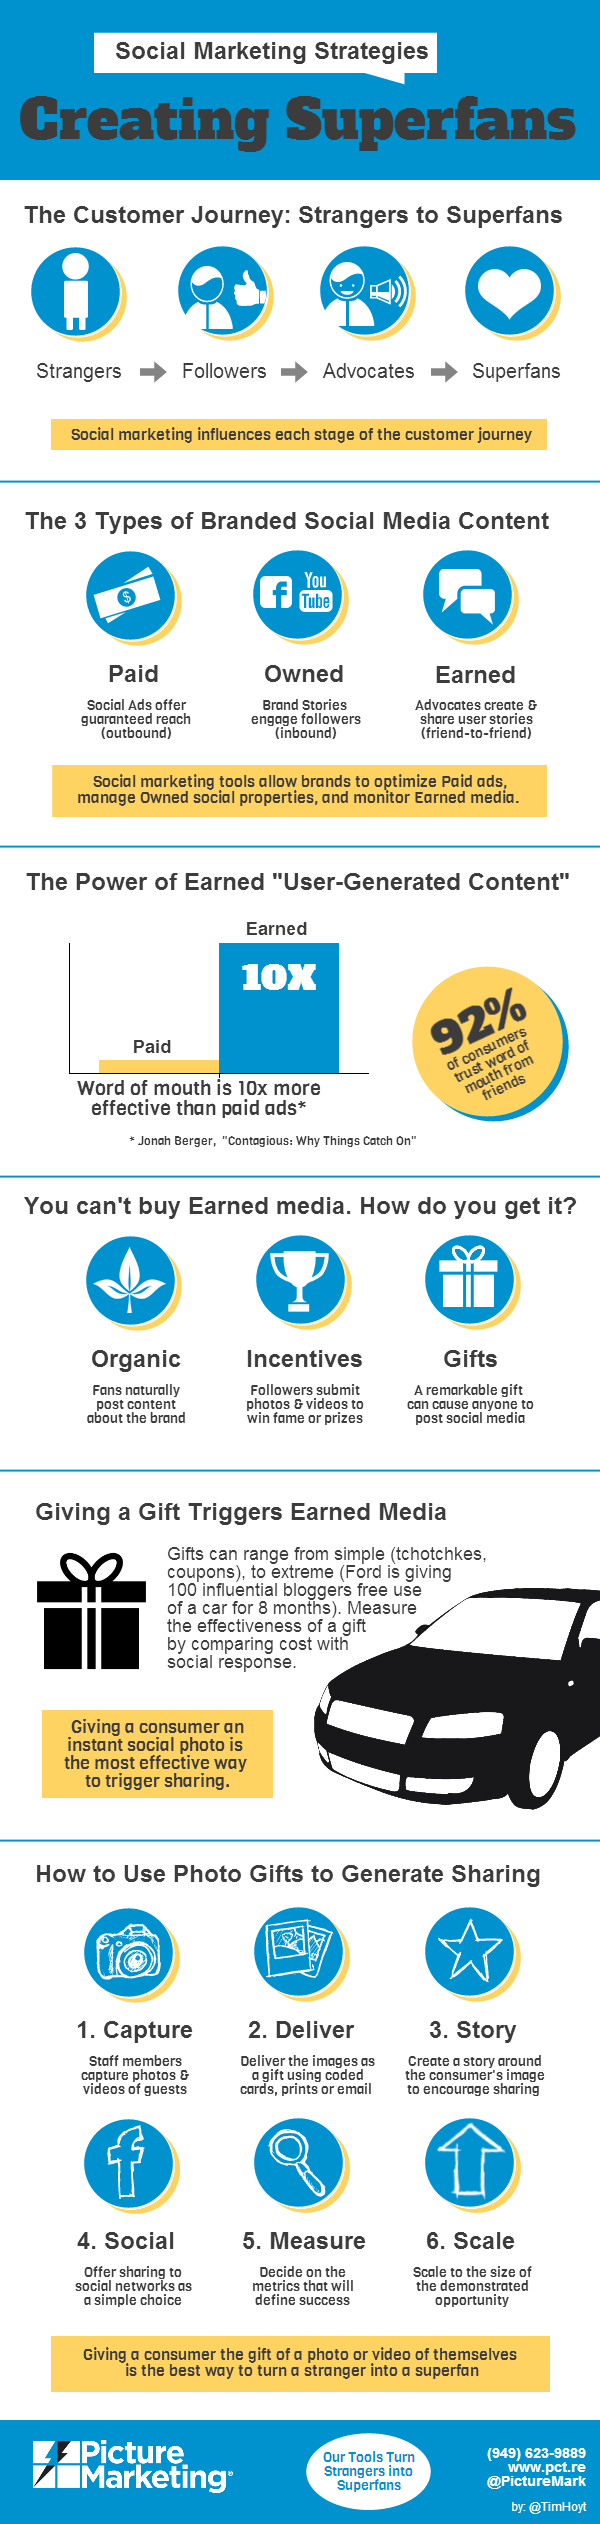 Creating Superfans [Infographic]